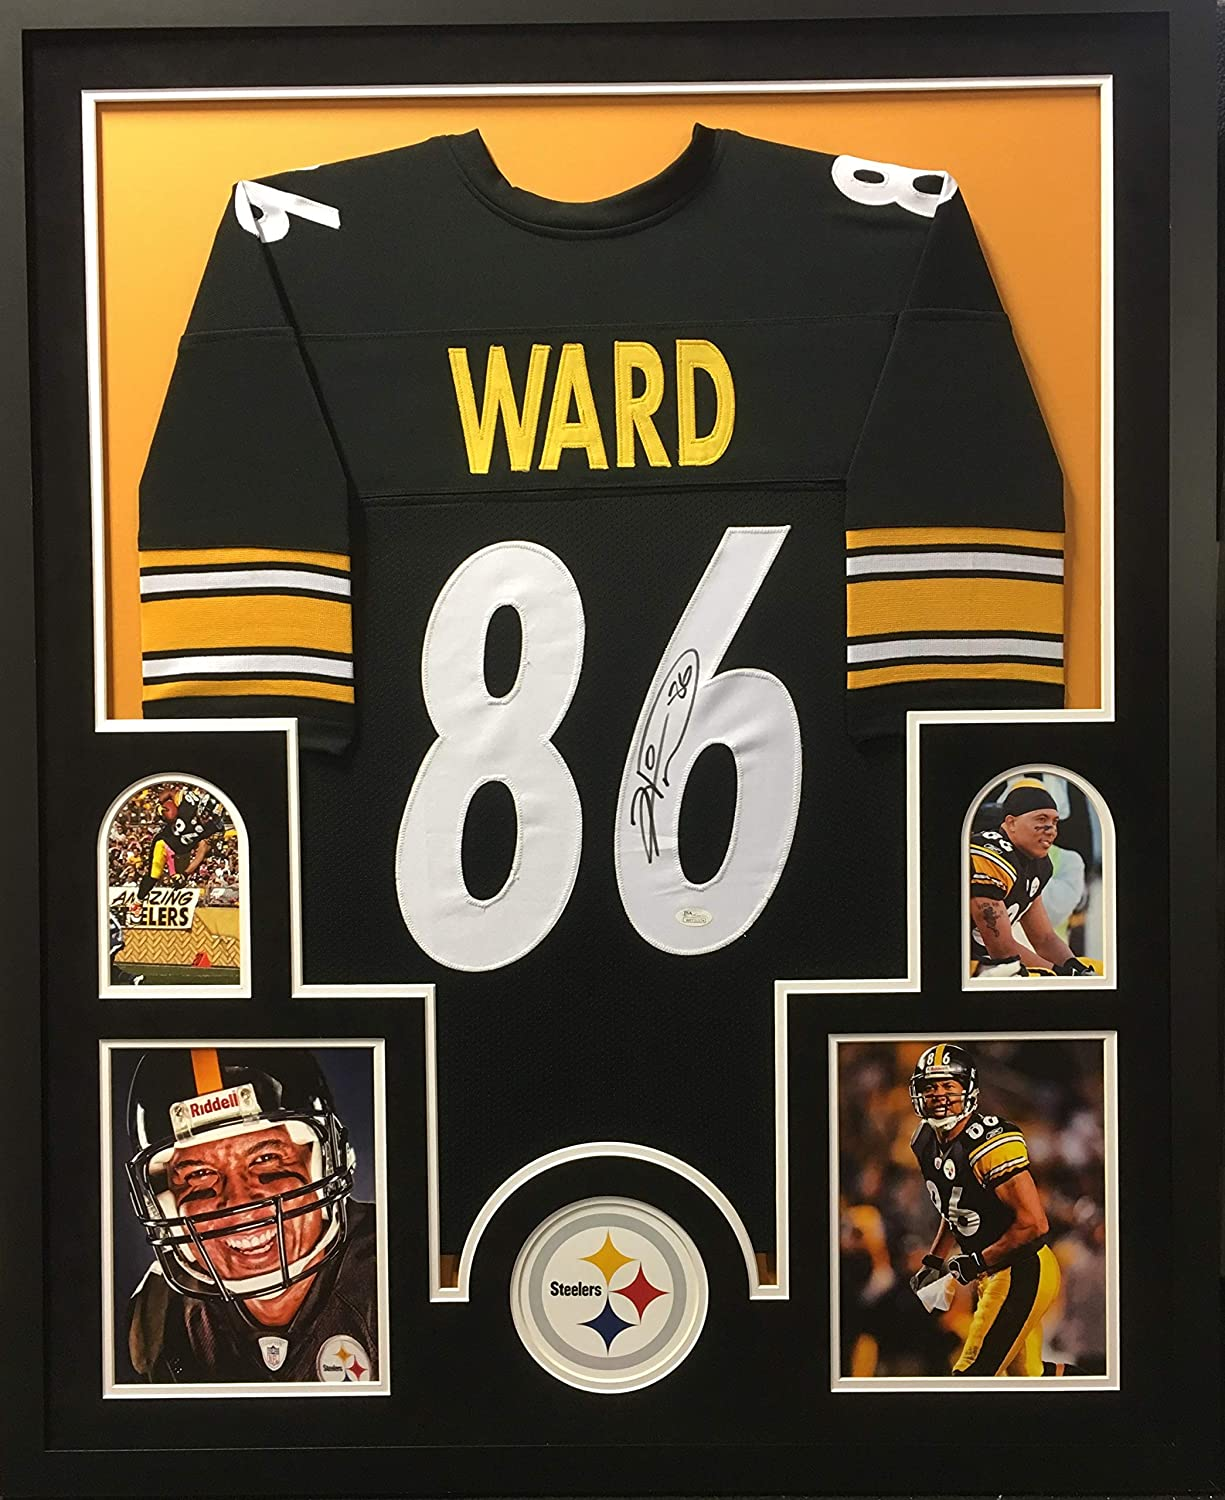 new style 9570a c2e44 steelers ward jersey